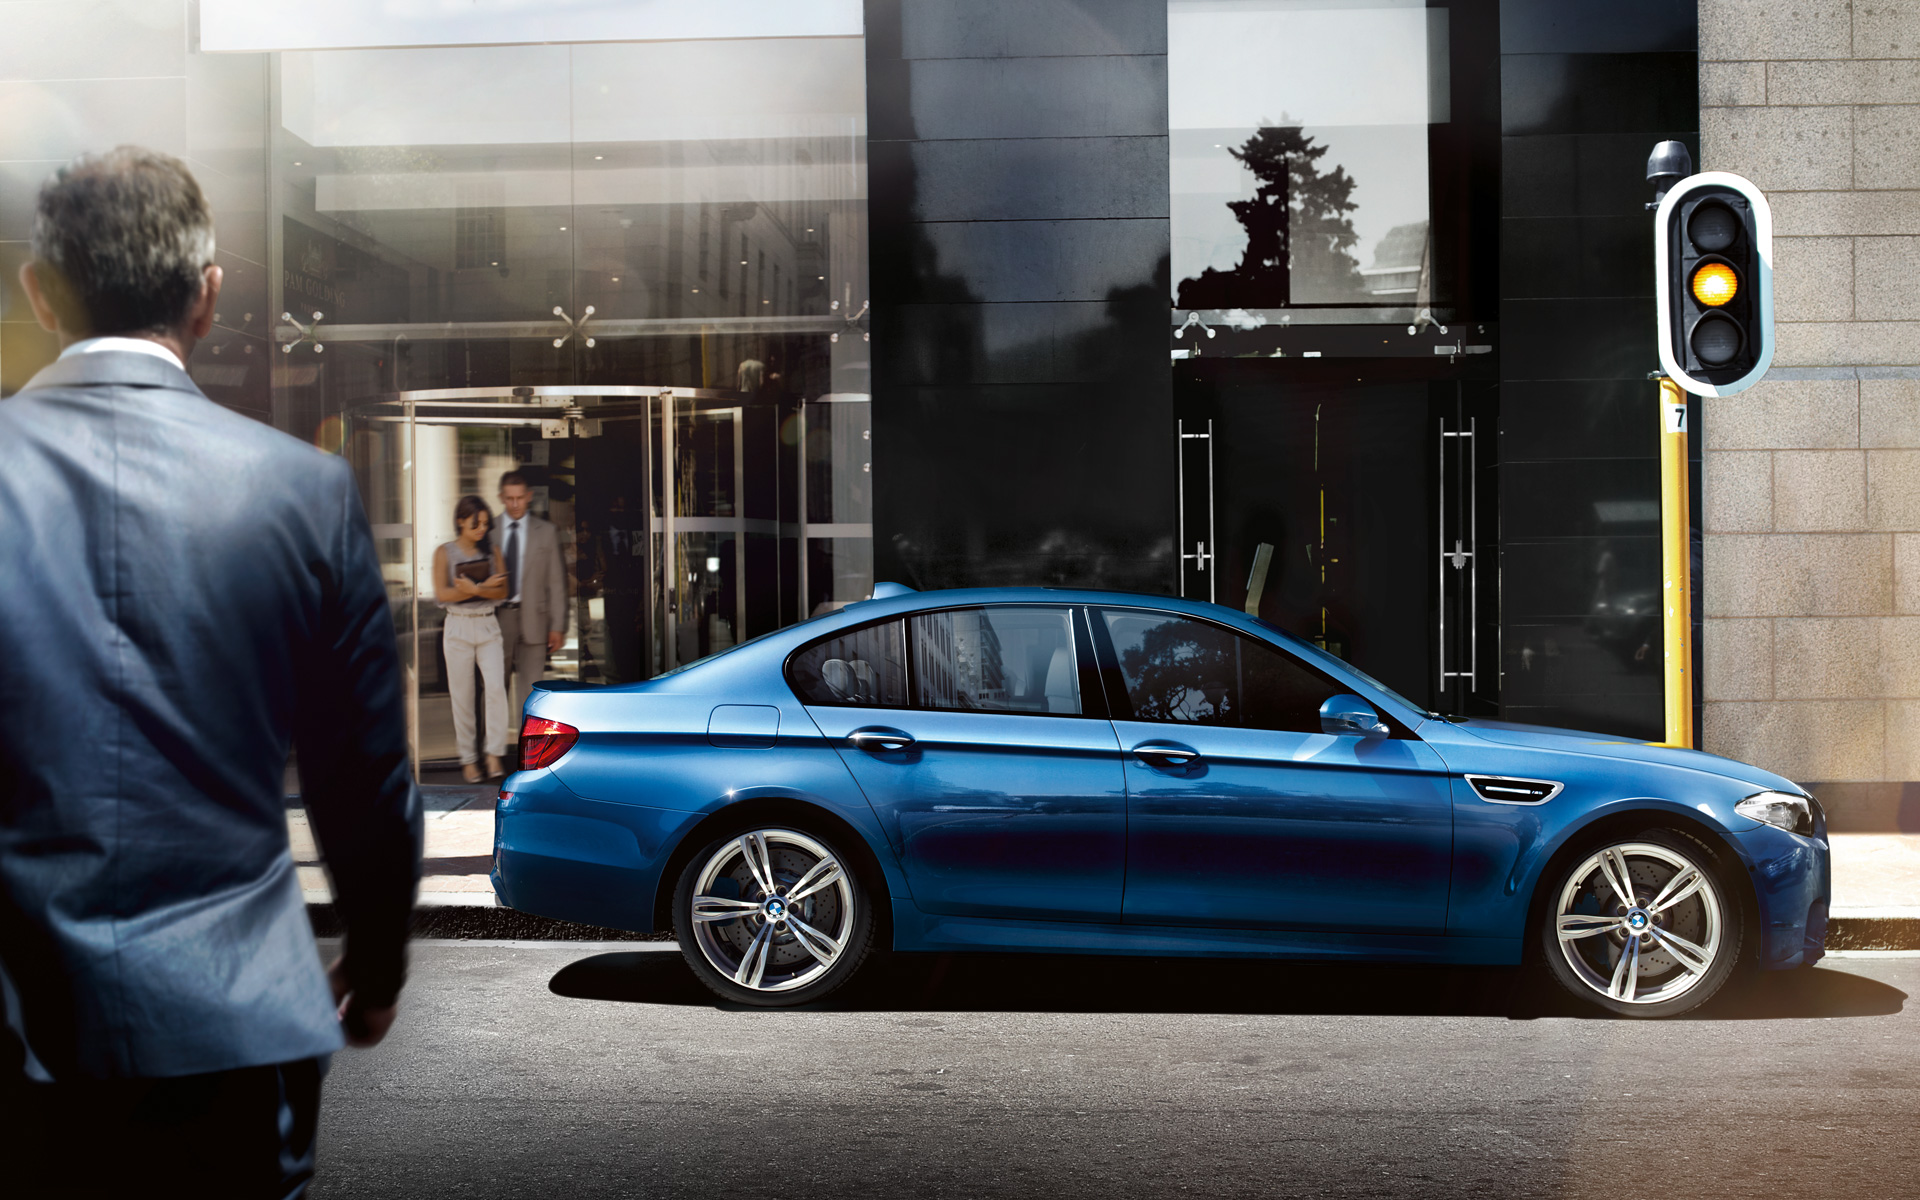 OFFICIAL BMW M5 Production pics high resolution!-09_1920x1200_bmw_f10m.jpg